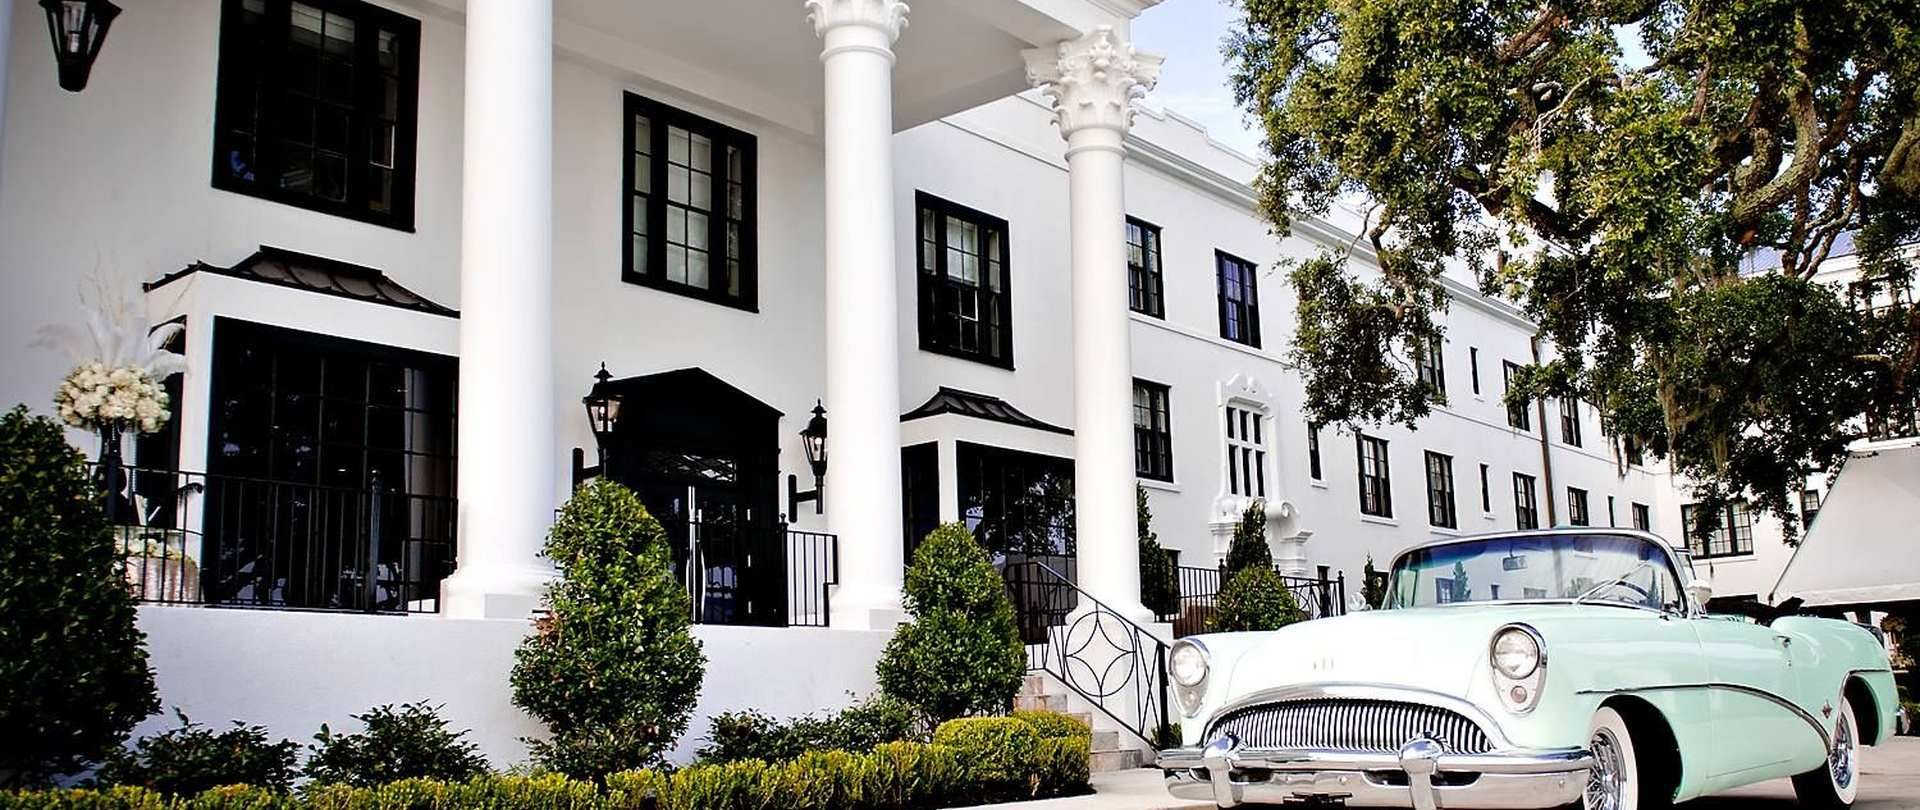 The Best Of Biloxi Beach Hotels White House Hotel Ms